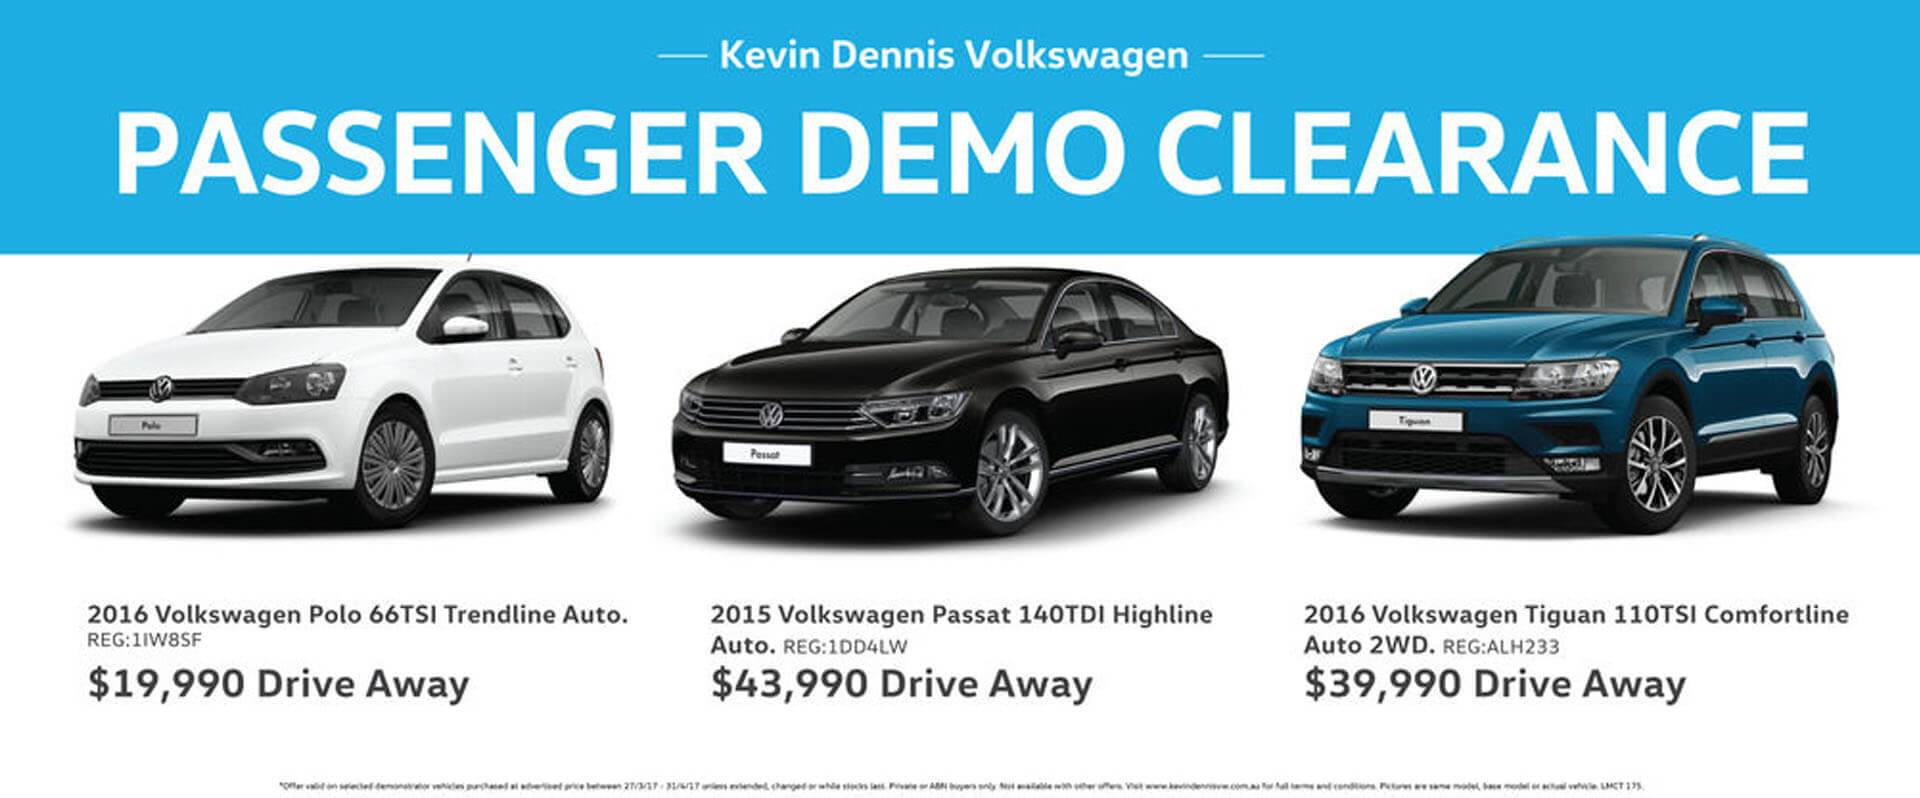 Passenger Demo Clearance